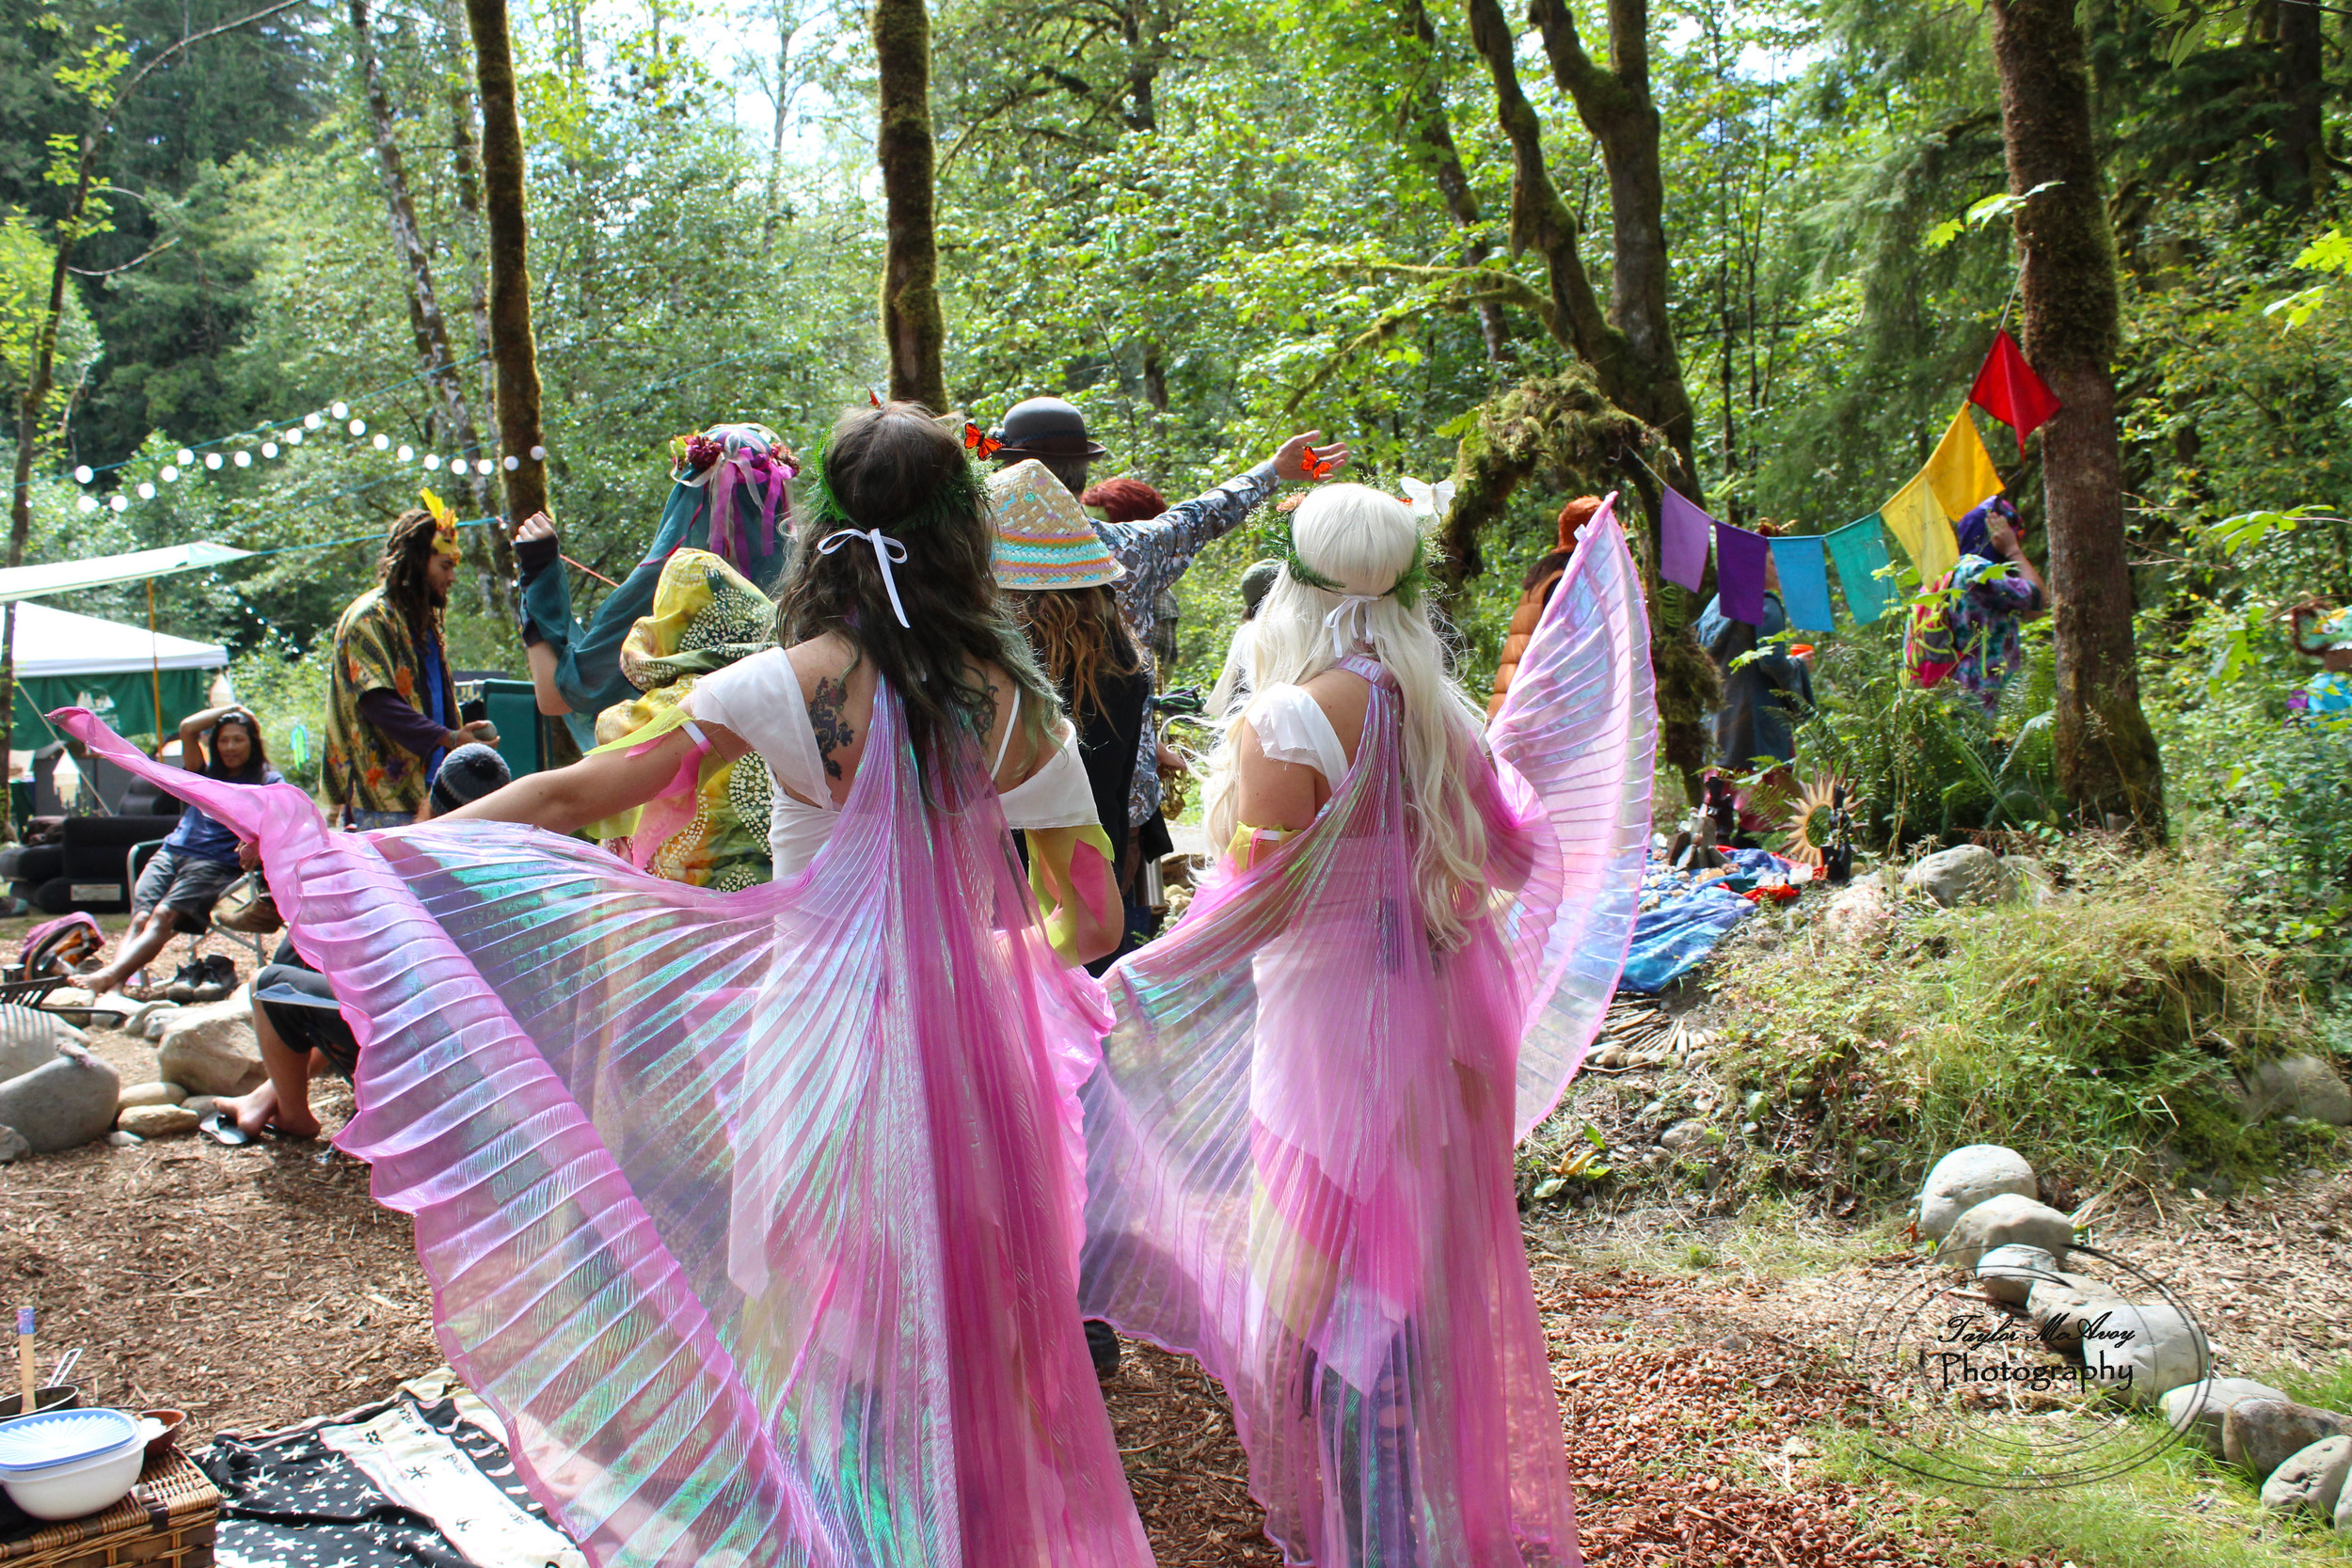 Faeries dance through the forest campsite in Mythica village before the community parade.